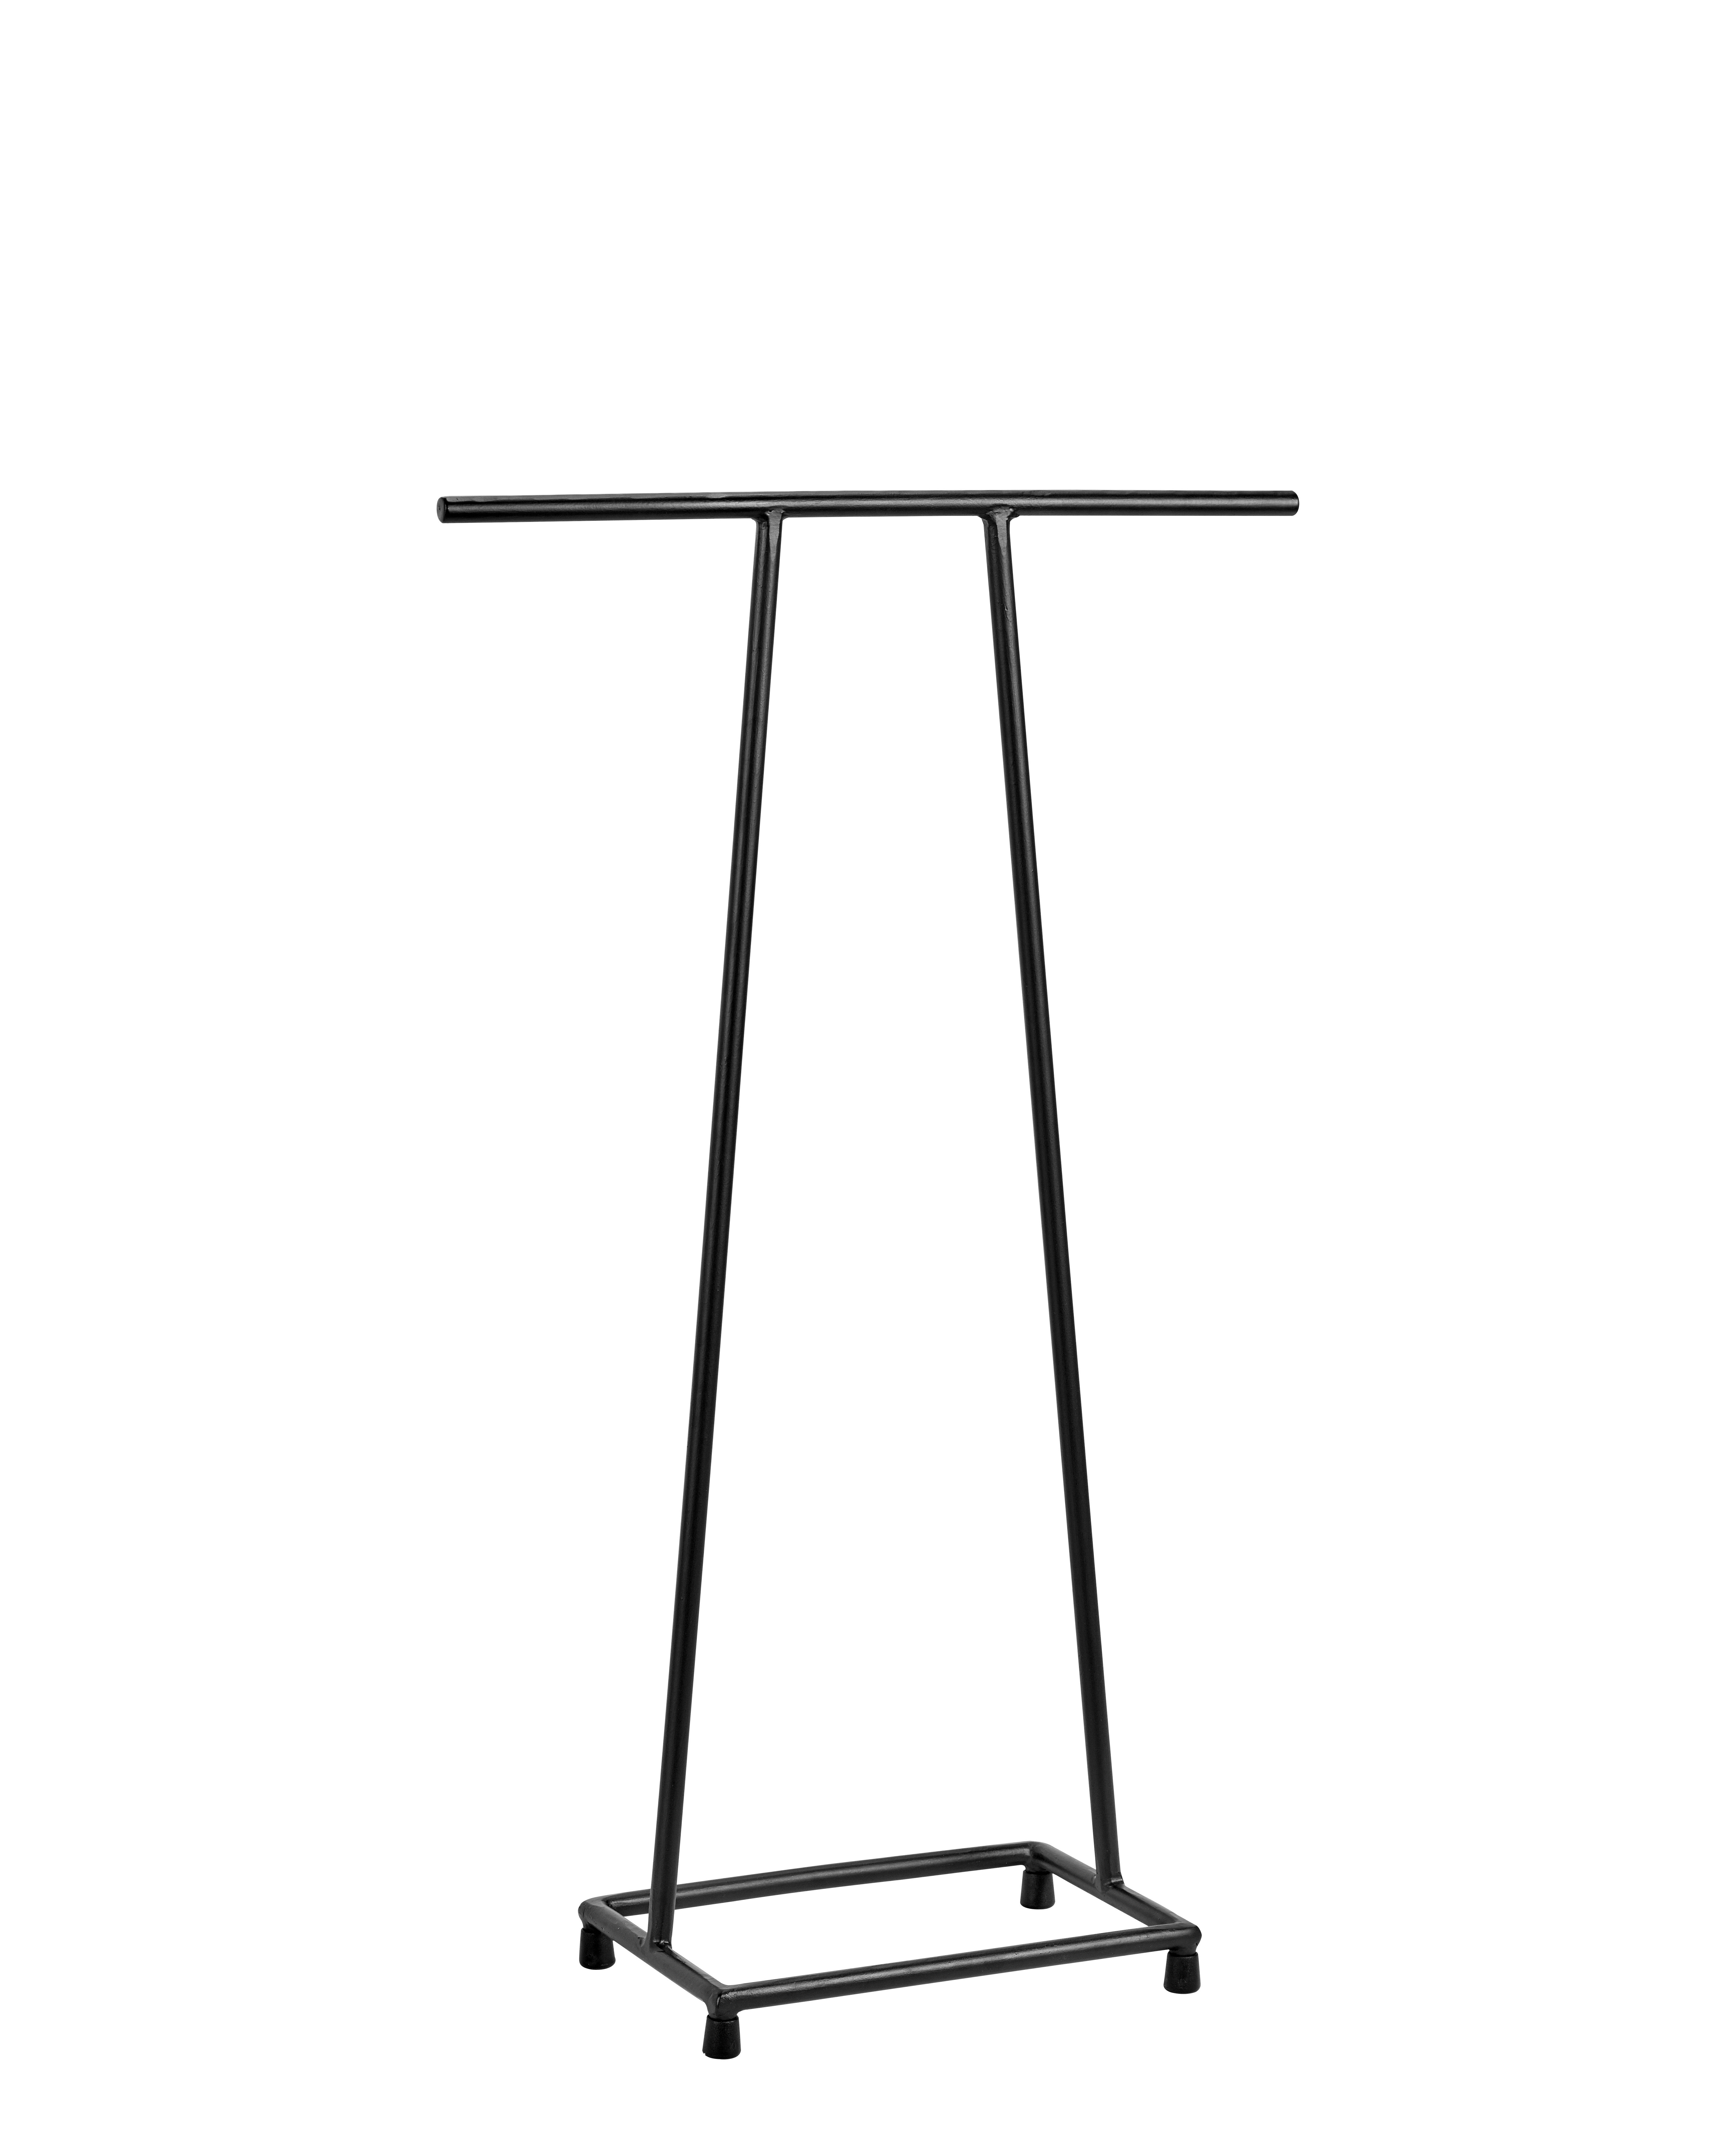 Furniture - Miscellaneous furniture - Holding on Rack - / H 80 cm by Serax - Black - Metal